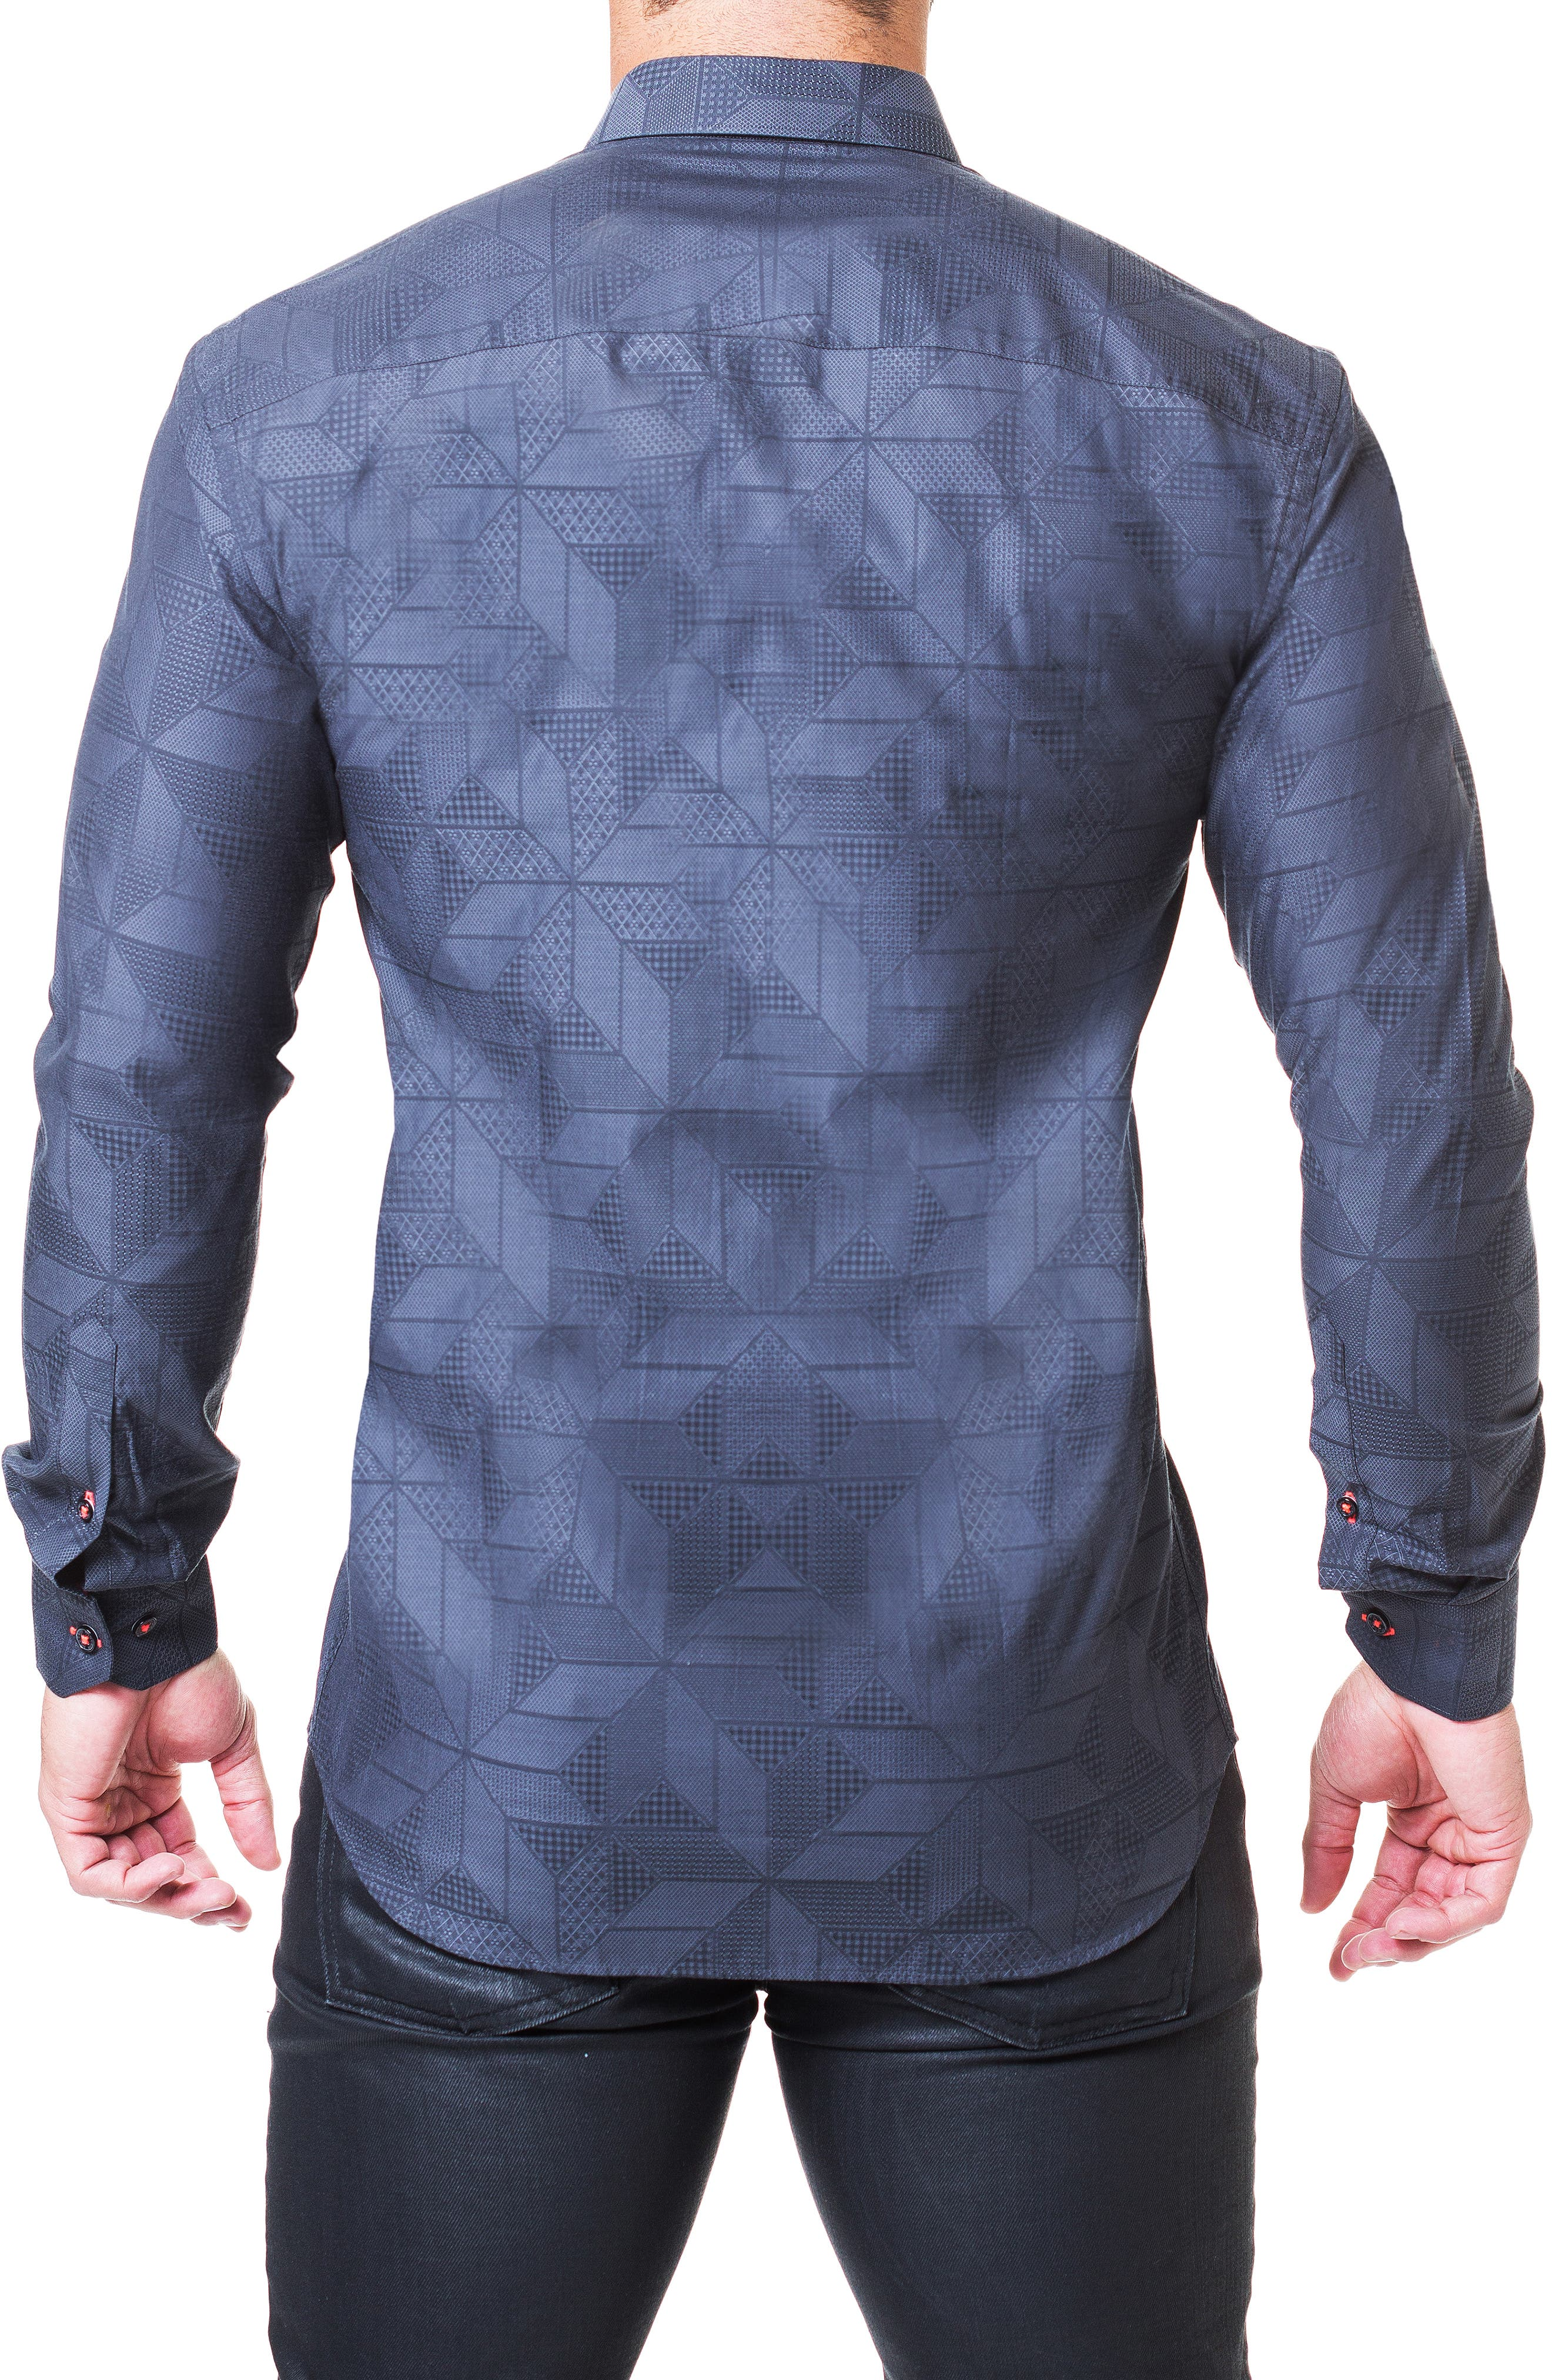 Fibonacci Dimension Regular Fit Sport Shirt,                             Alternate thumbnail 2, color,                             GREY